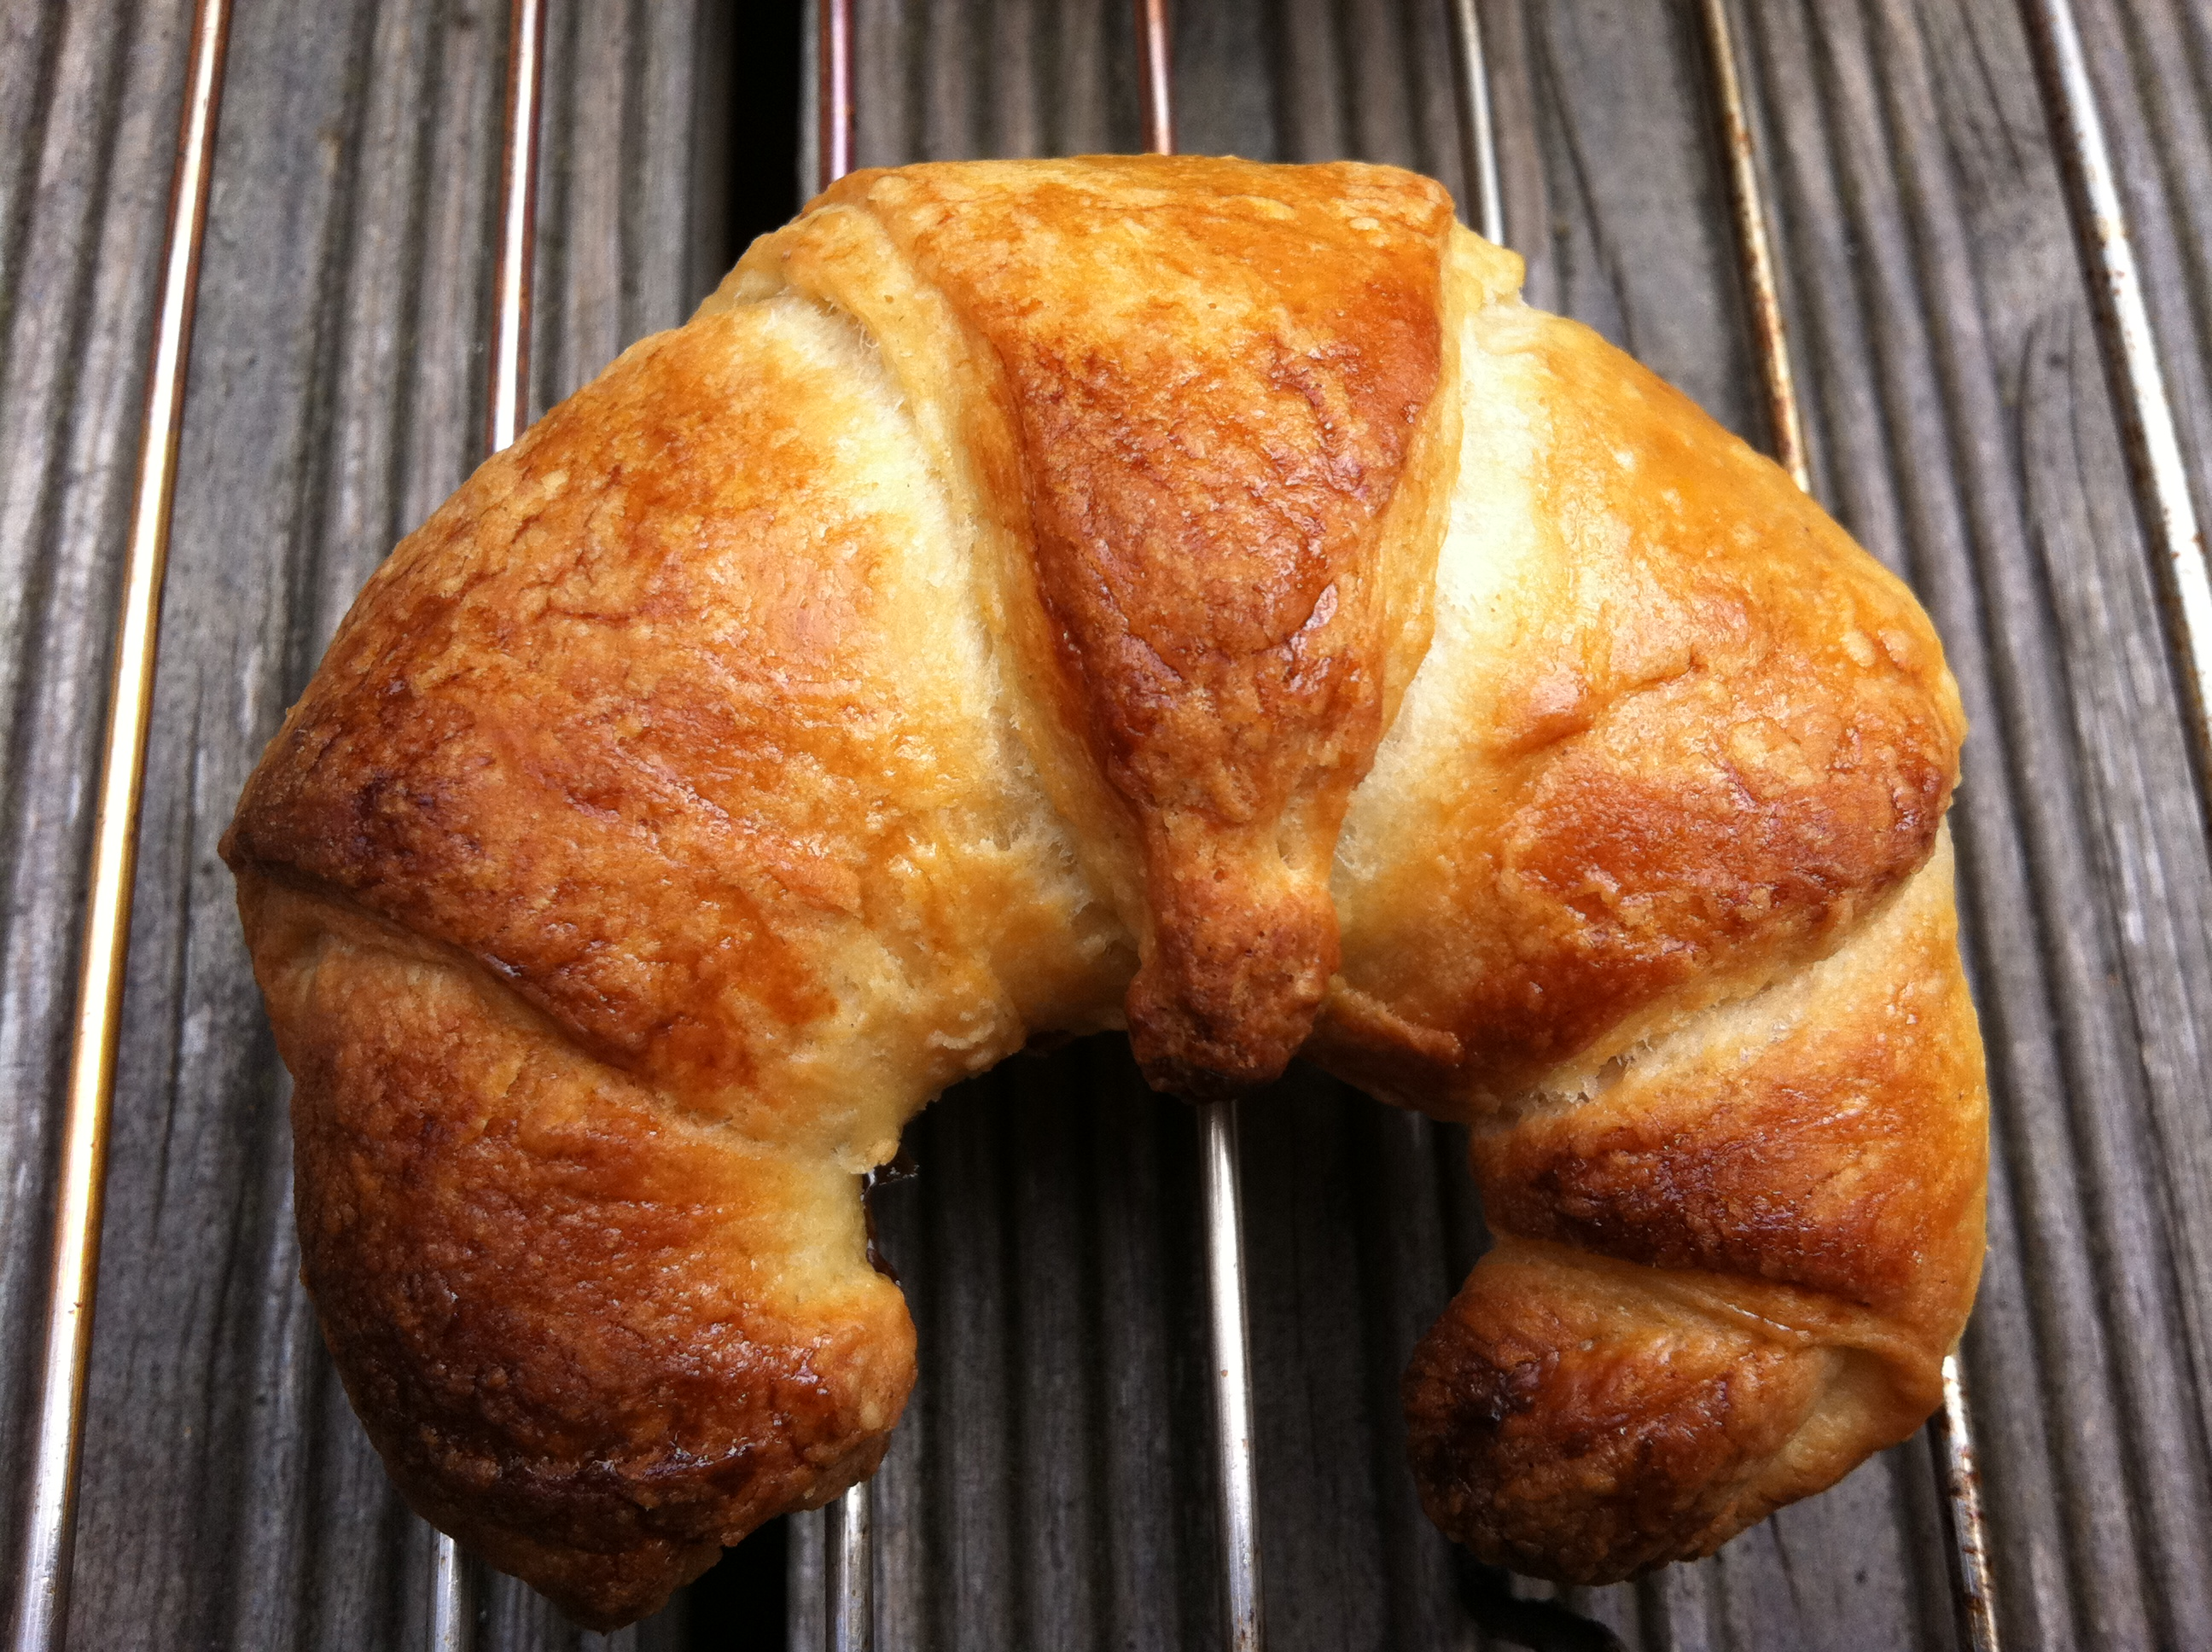 Homemade croissants: buttery, flaky breakfast pastry